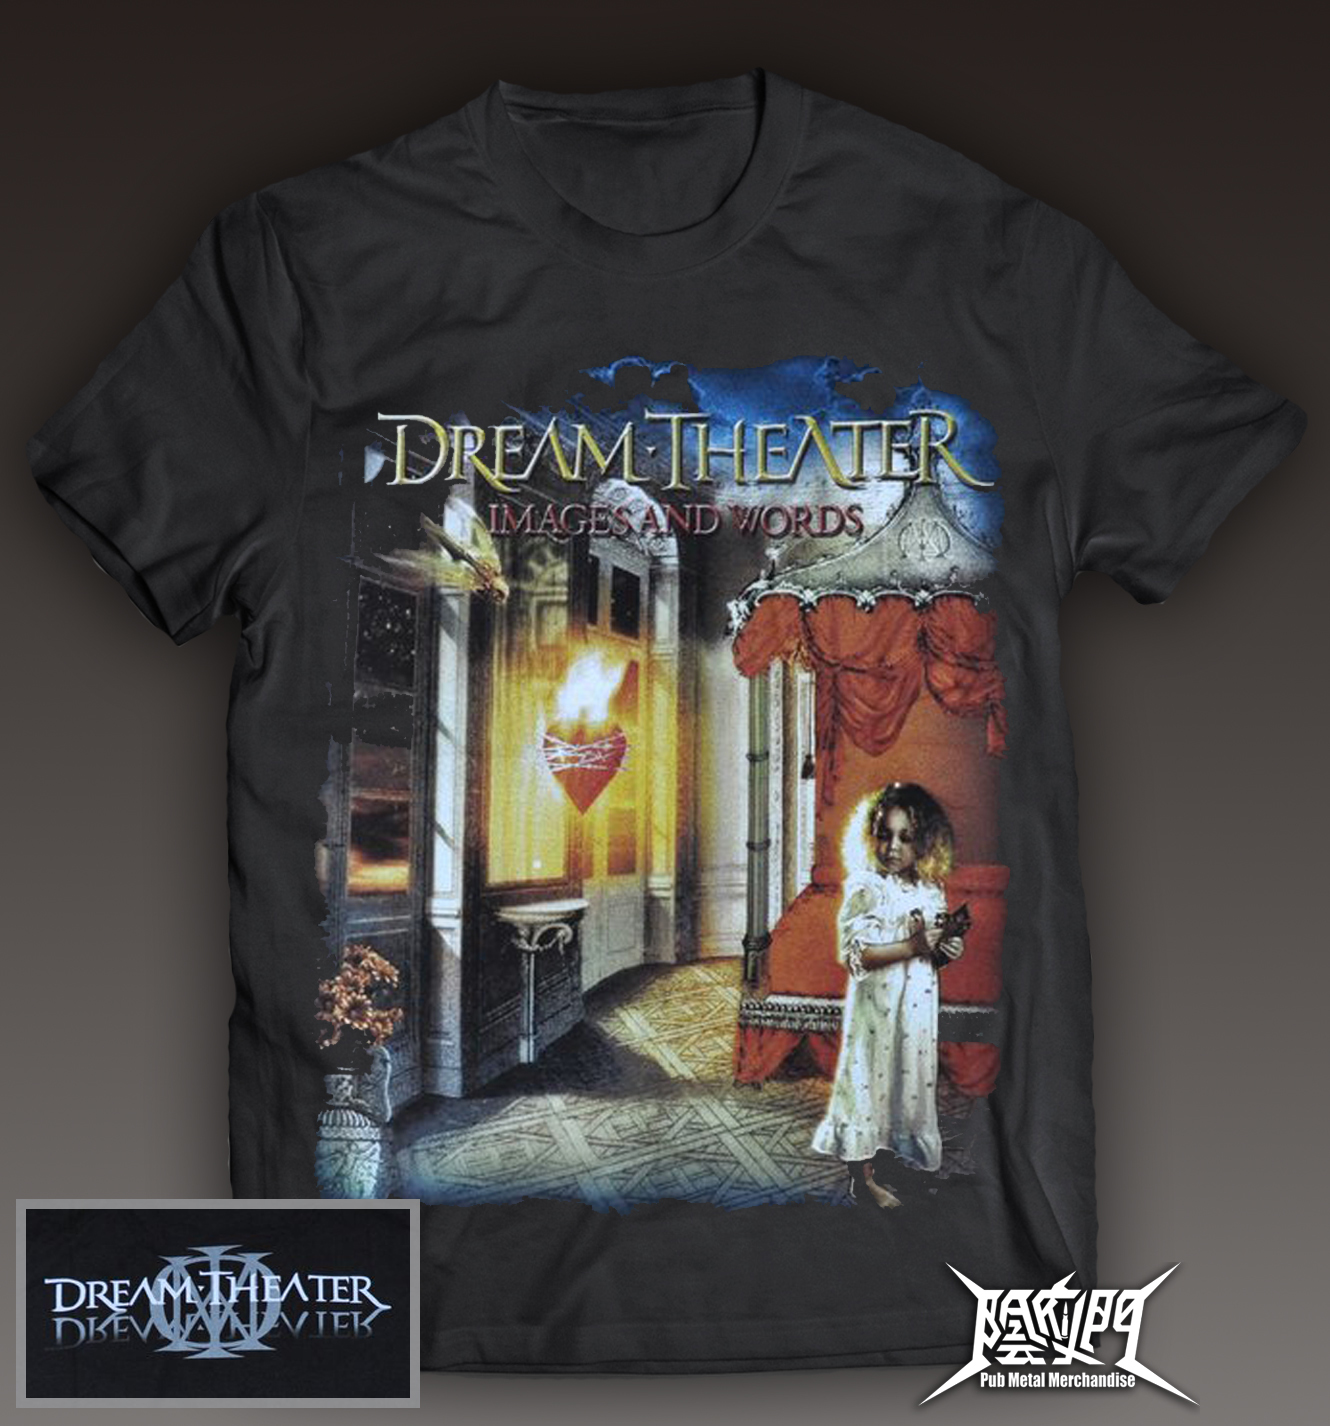 Dream theater-Image.jpg